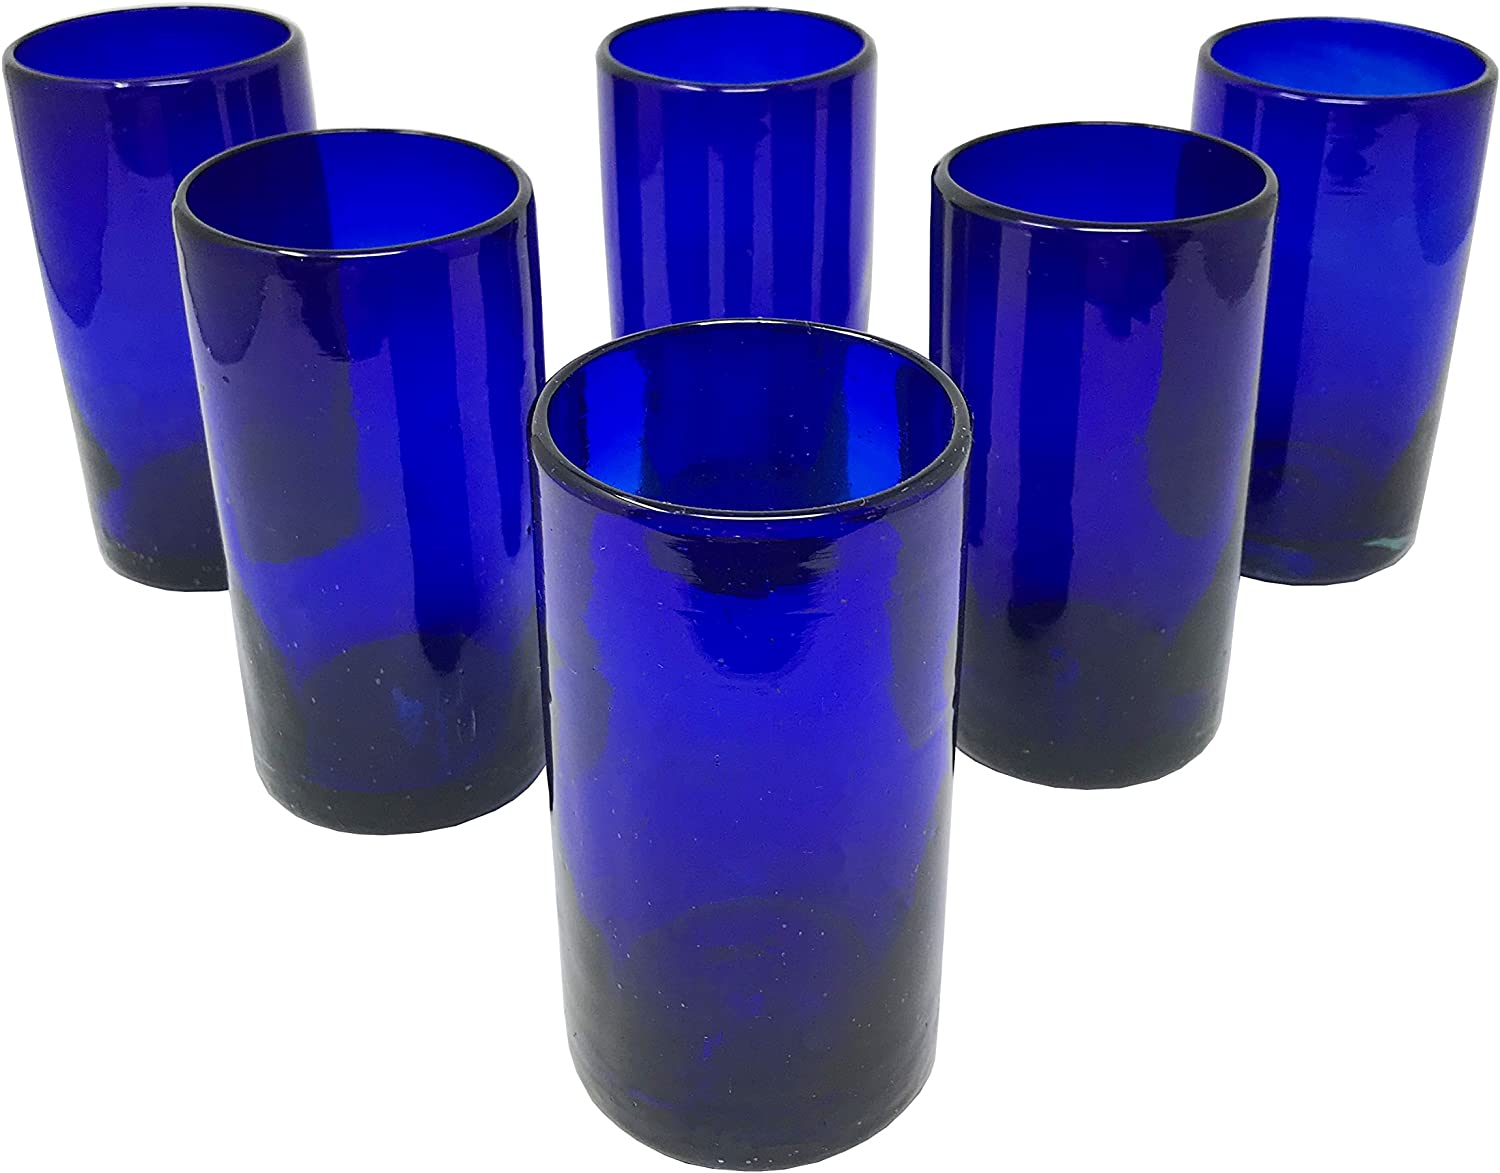 LA MEXICANA Mexican Hand Blown Drinking Glasses Cobalt Blue Recycled Glass, 16 oz. (set of 6), Blue Style